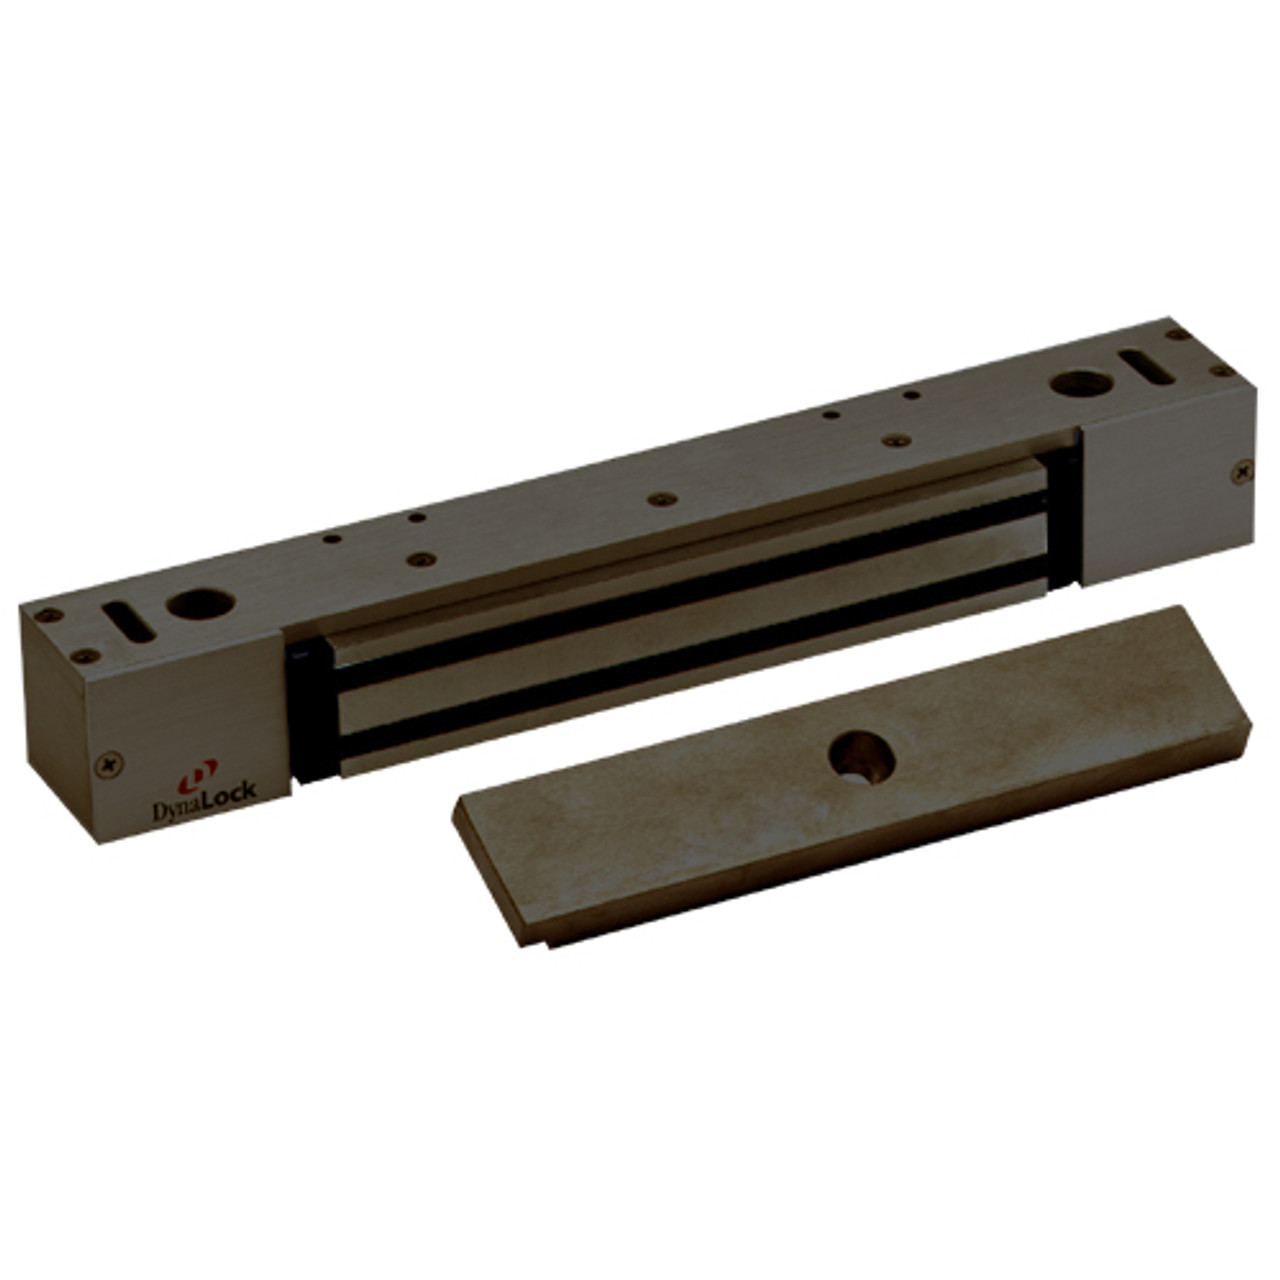 2268-10-US10B-ATS DynaLock 2268 Series Single Classic Low Profile Electromagnetic Lock for Outswing Door with ATS in Oil Rubbed Bronze